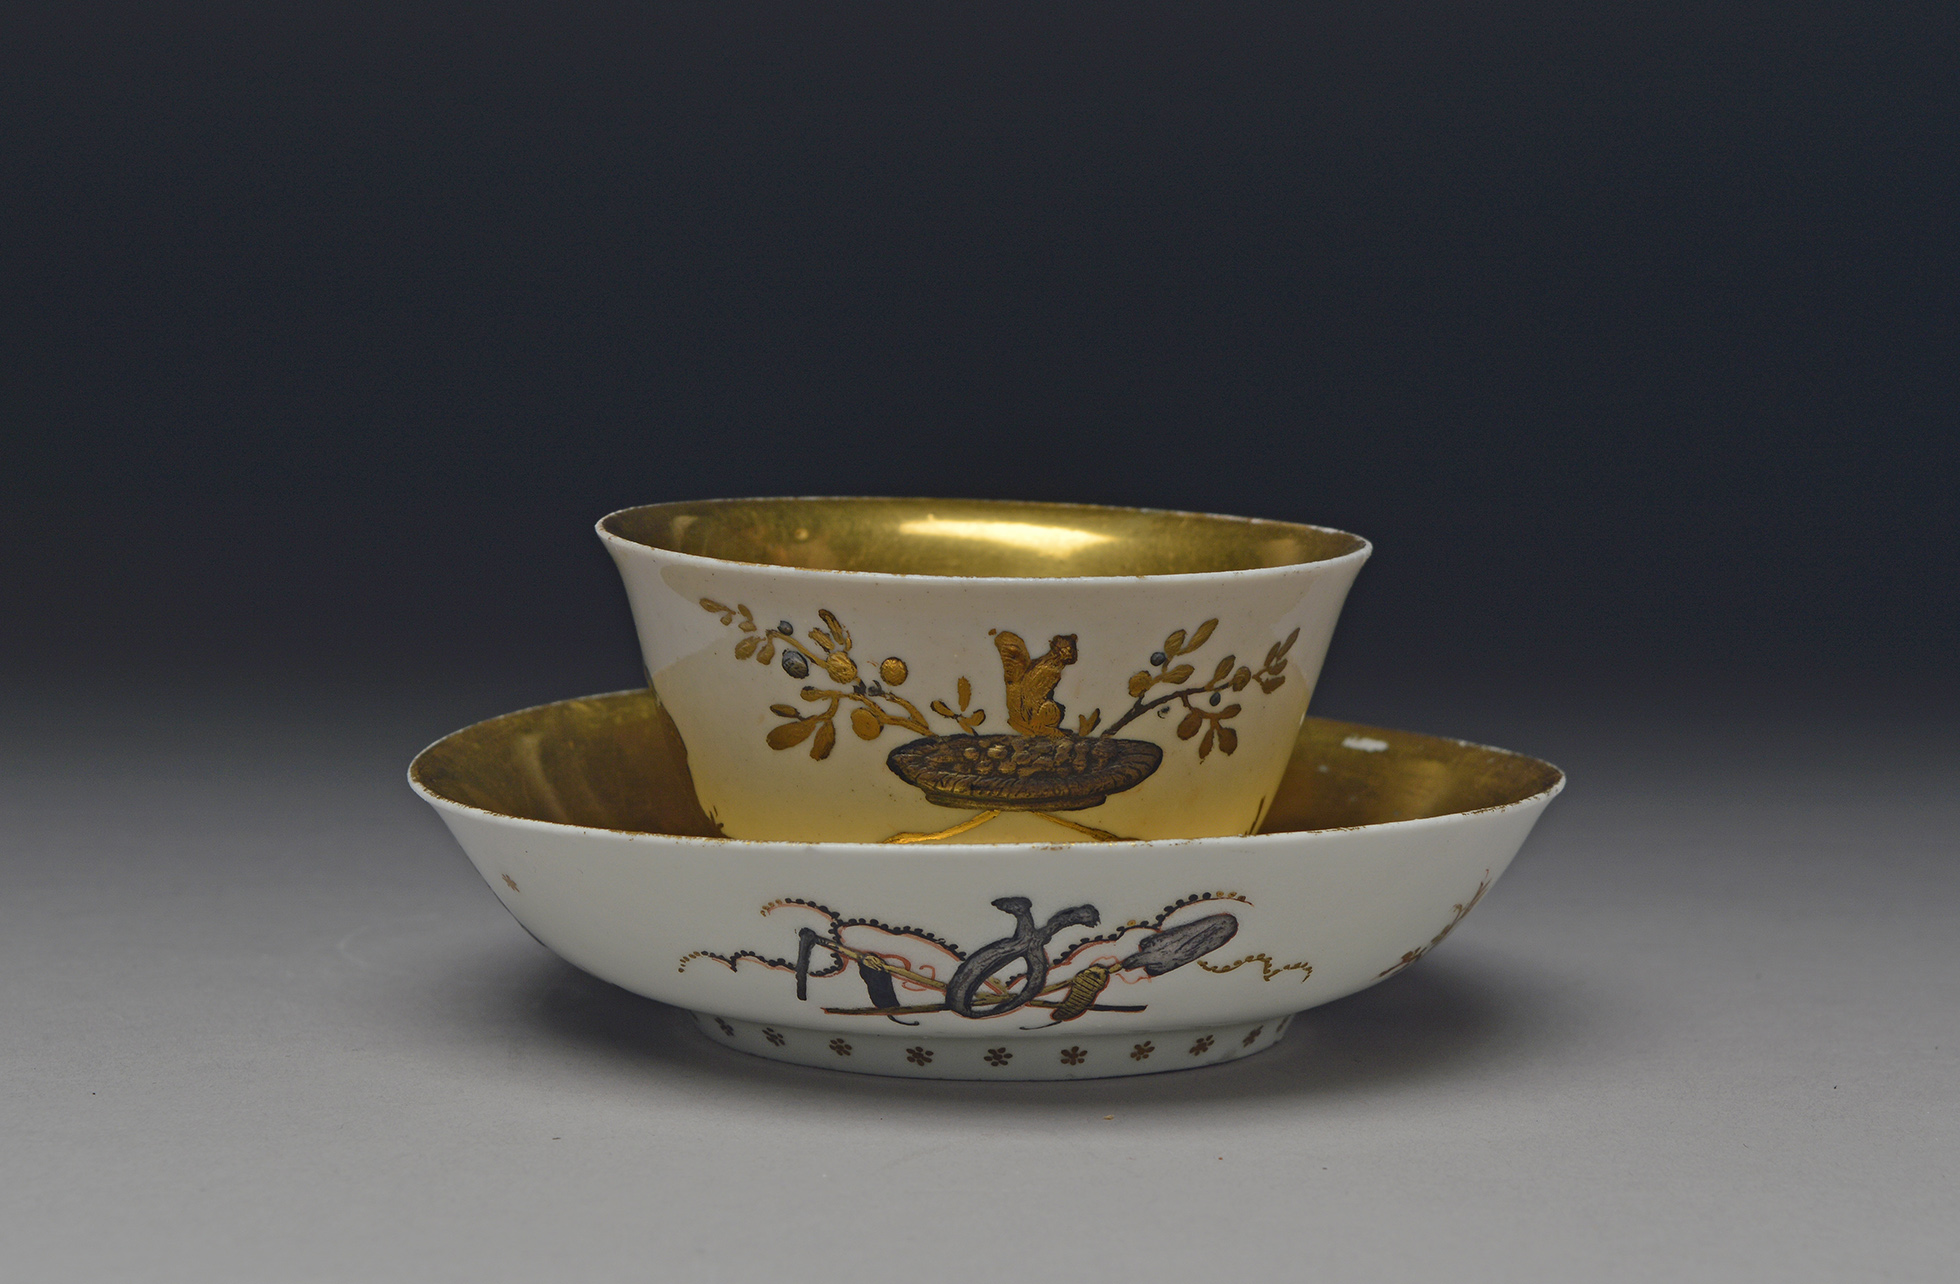 Image of a tea bowl sitting in a saucer. Both the bowl and saucer have gold interiors and finely decorated exteriors.